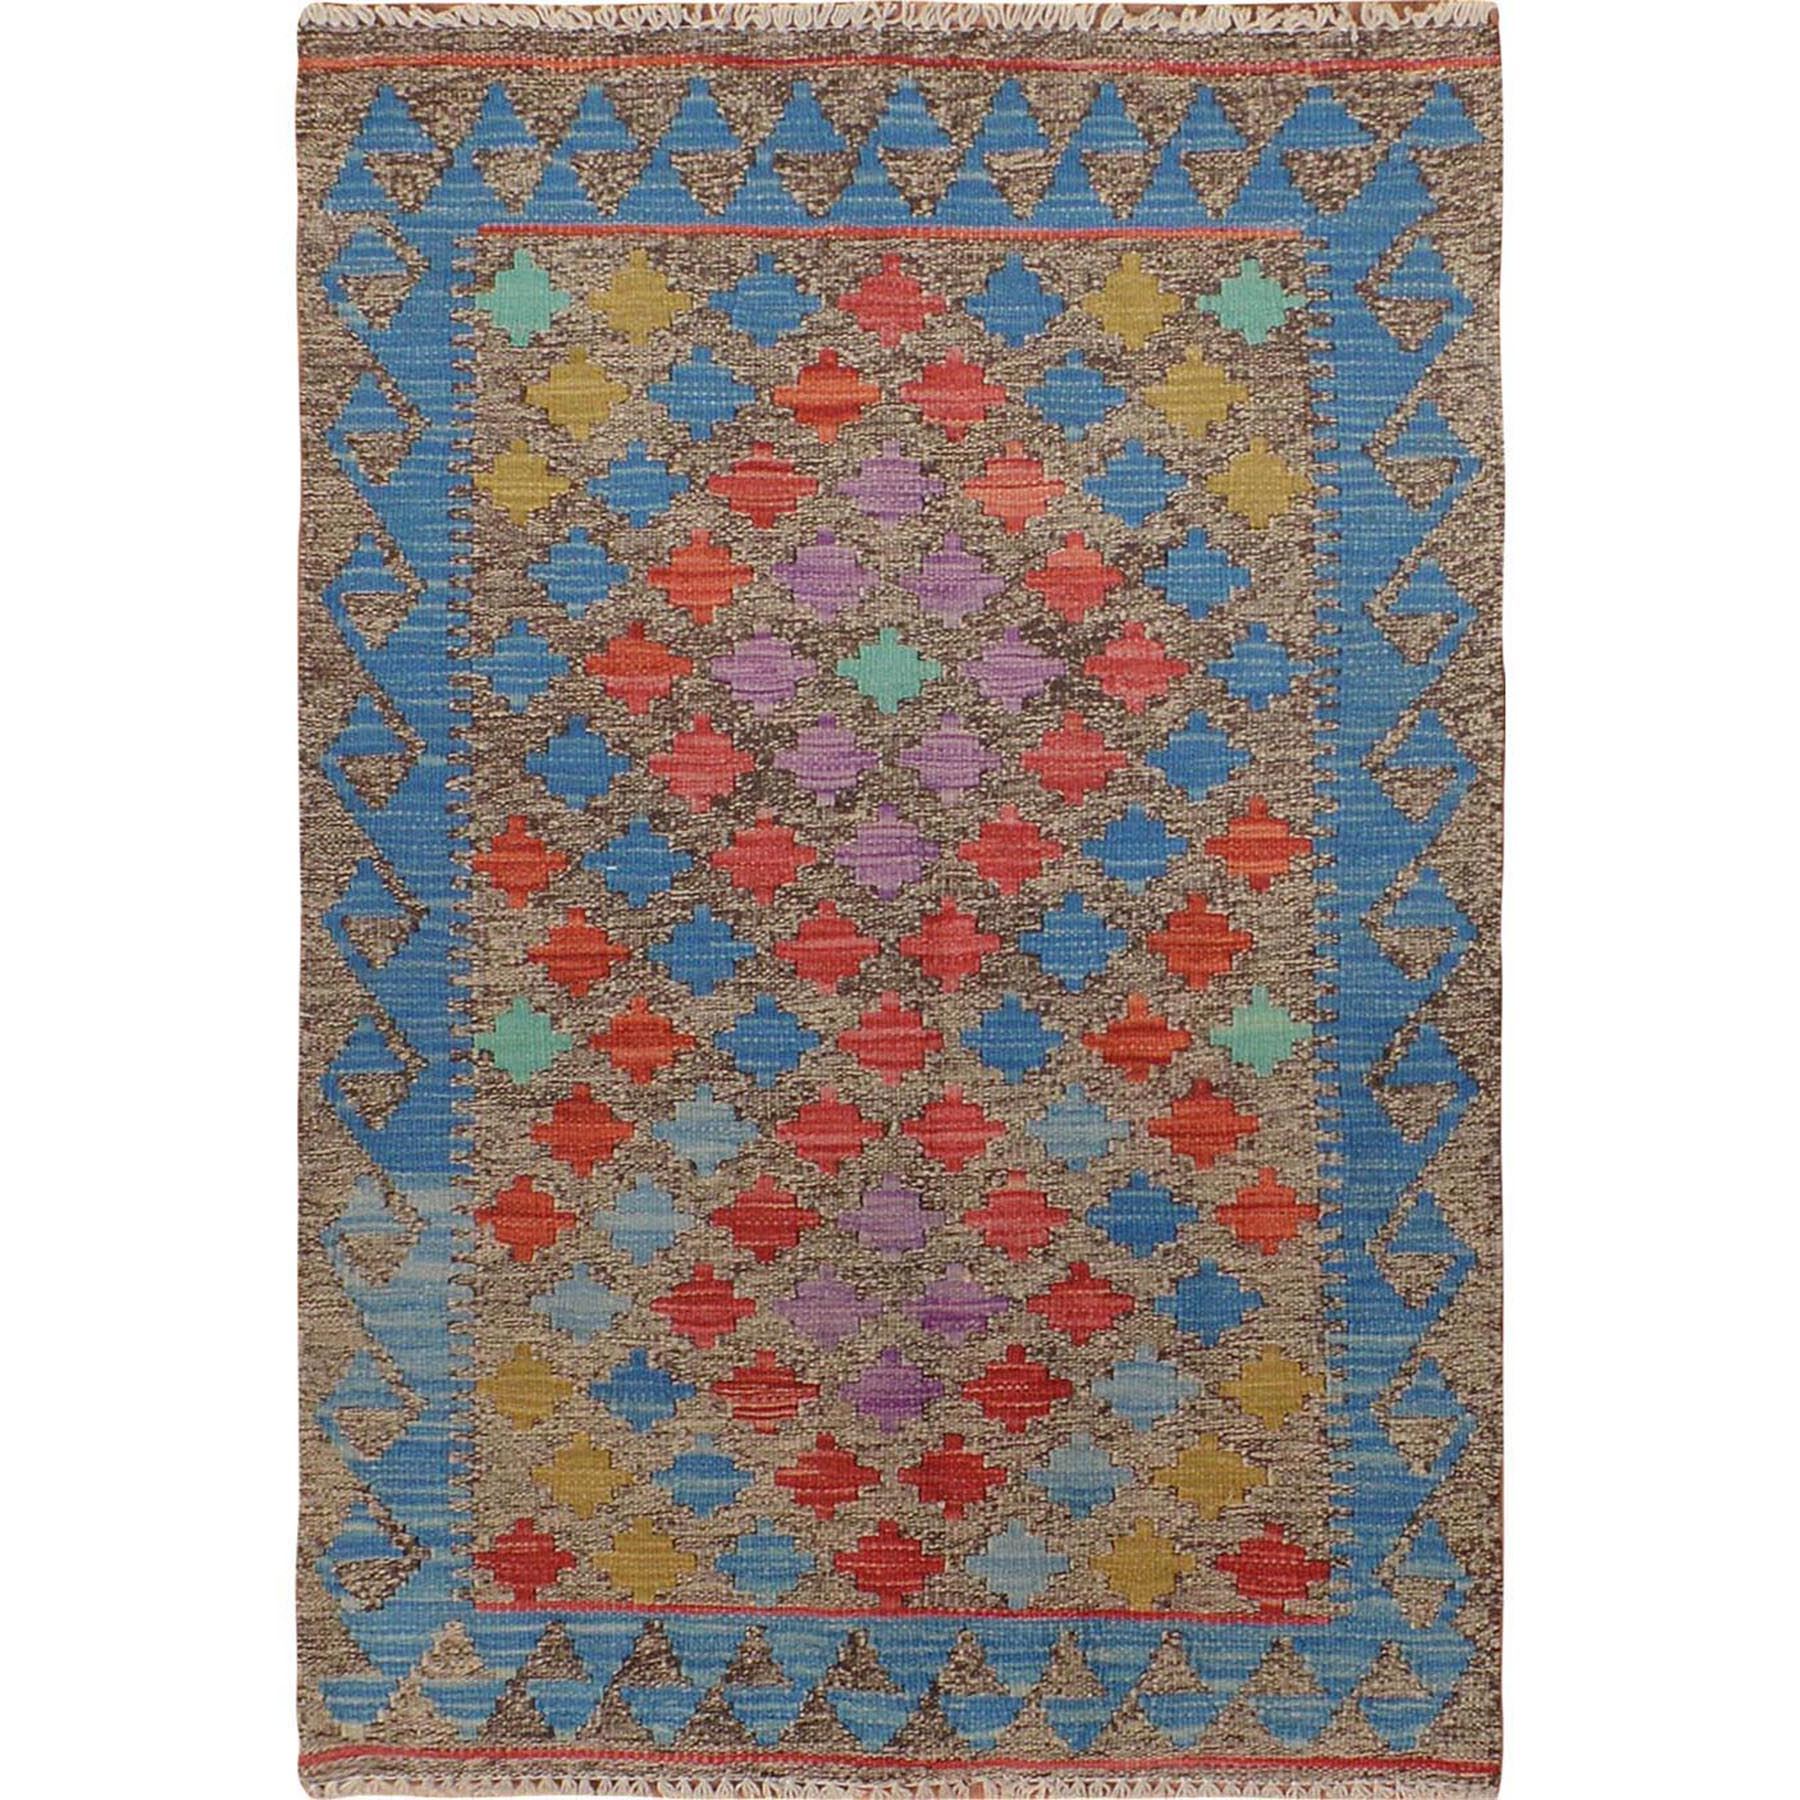 "2'7""x3'9"" Colorful Reversible Afghan Kilim Flat Weave Pure Wool Hand Woven Oriental Rug"